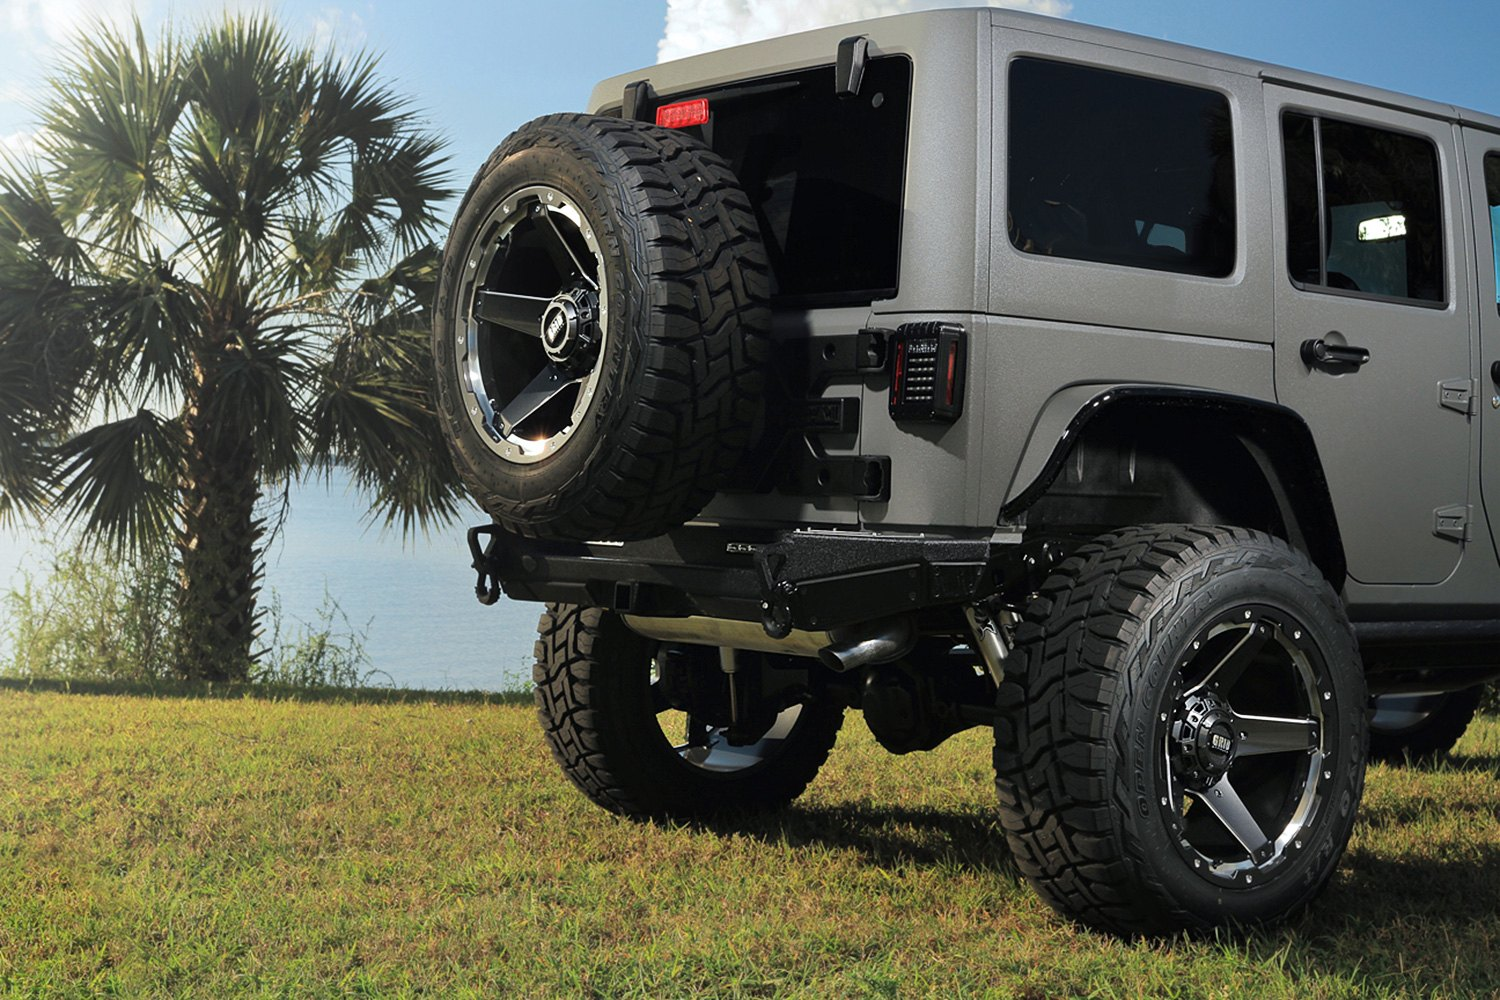 grid-off-road-gd4-gloss-graphite-milled-accents-jeep-wrangler-jk-3.jpg